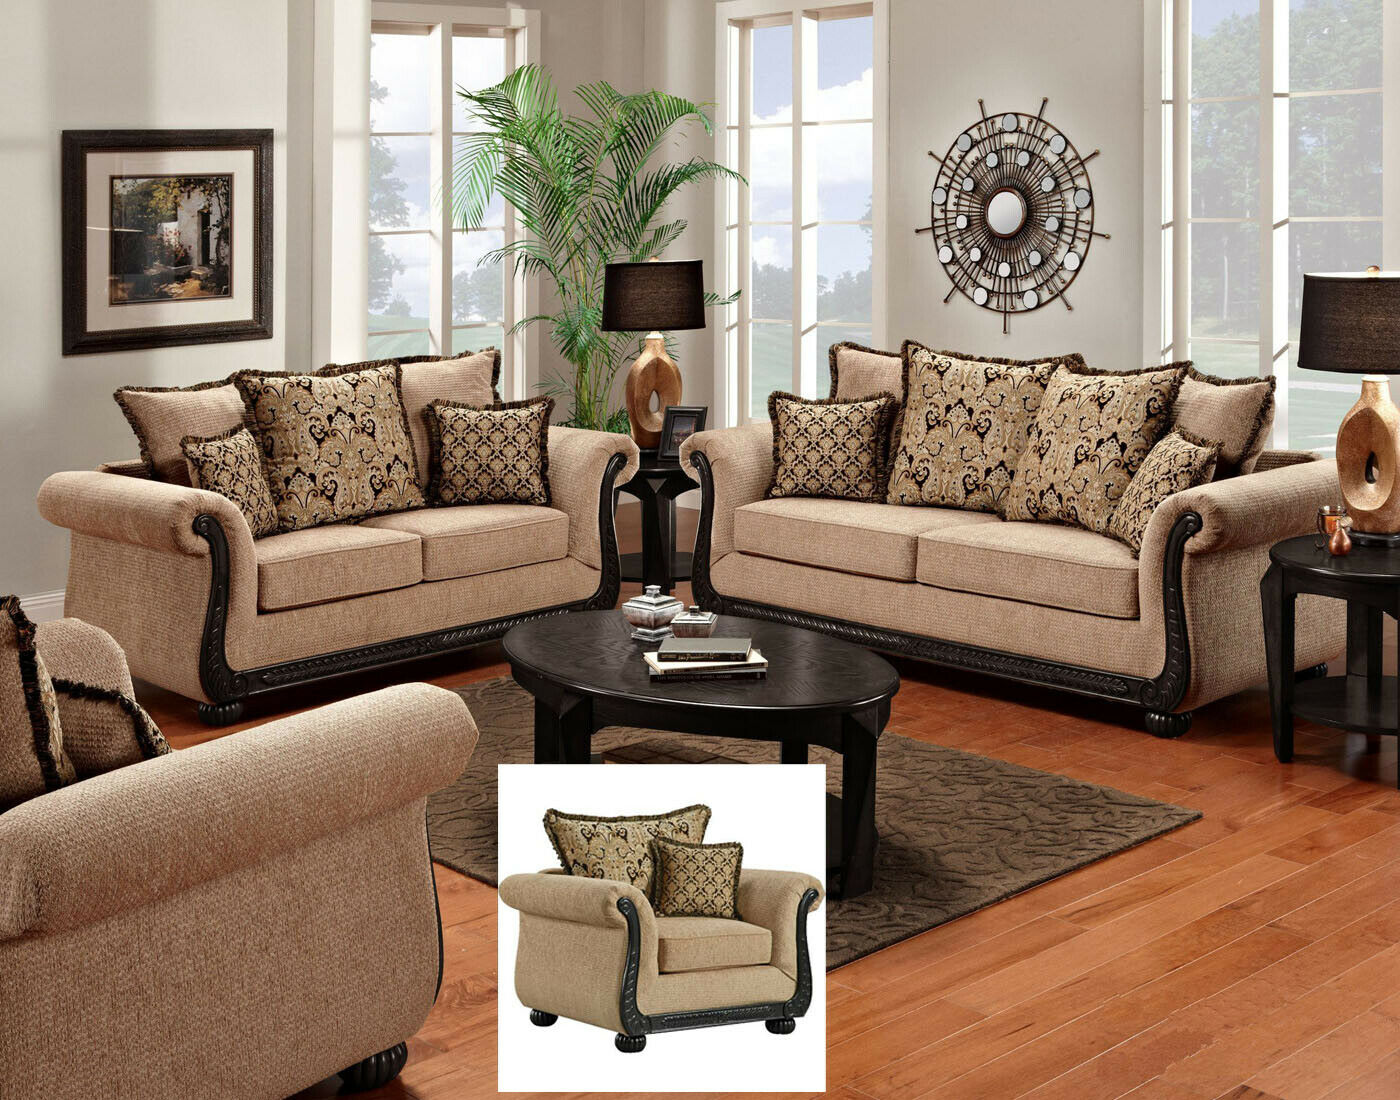 Delray Traditional Sofa LoveSeat U0026 Chair 3pc Living Room Furniture Set  Chenille 1 Of 1Only 2 Available See More